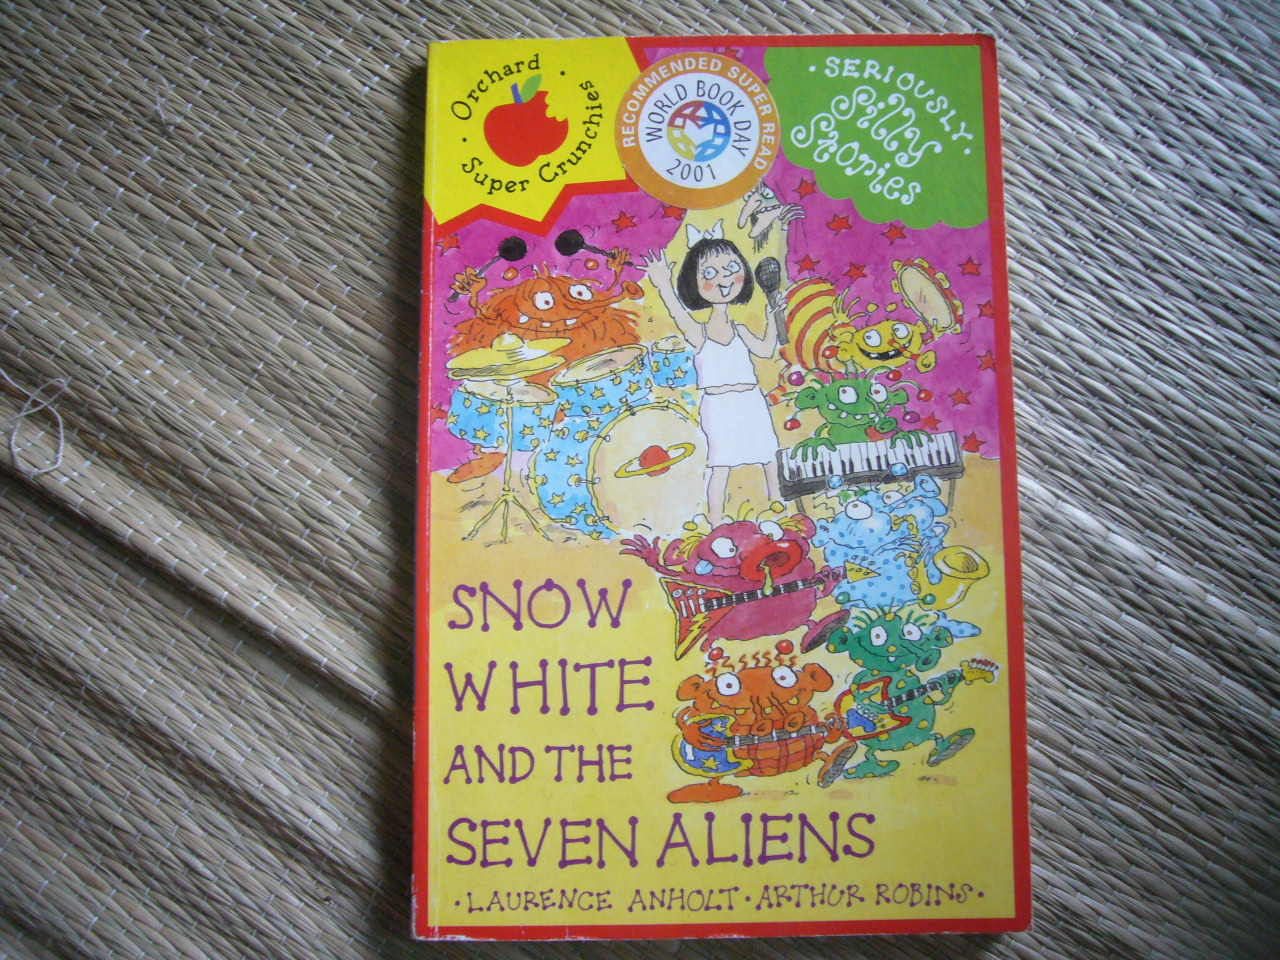 Snow White and the Seven Aliens